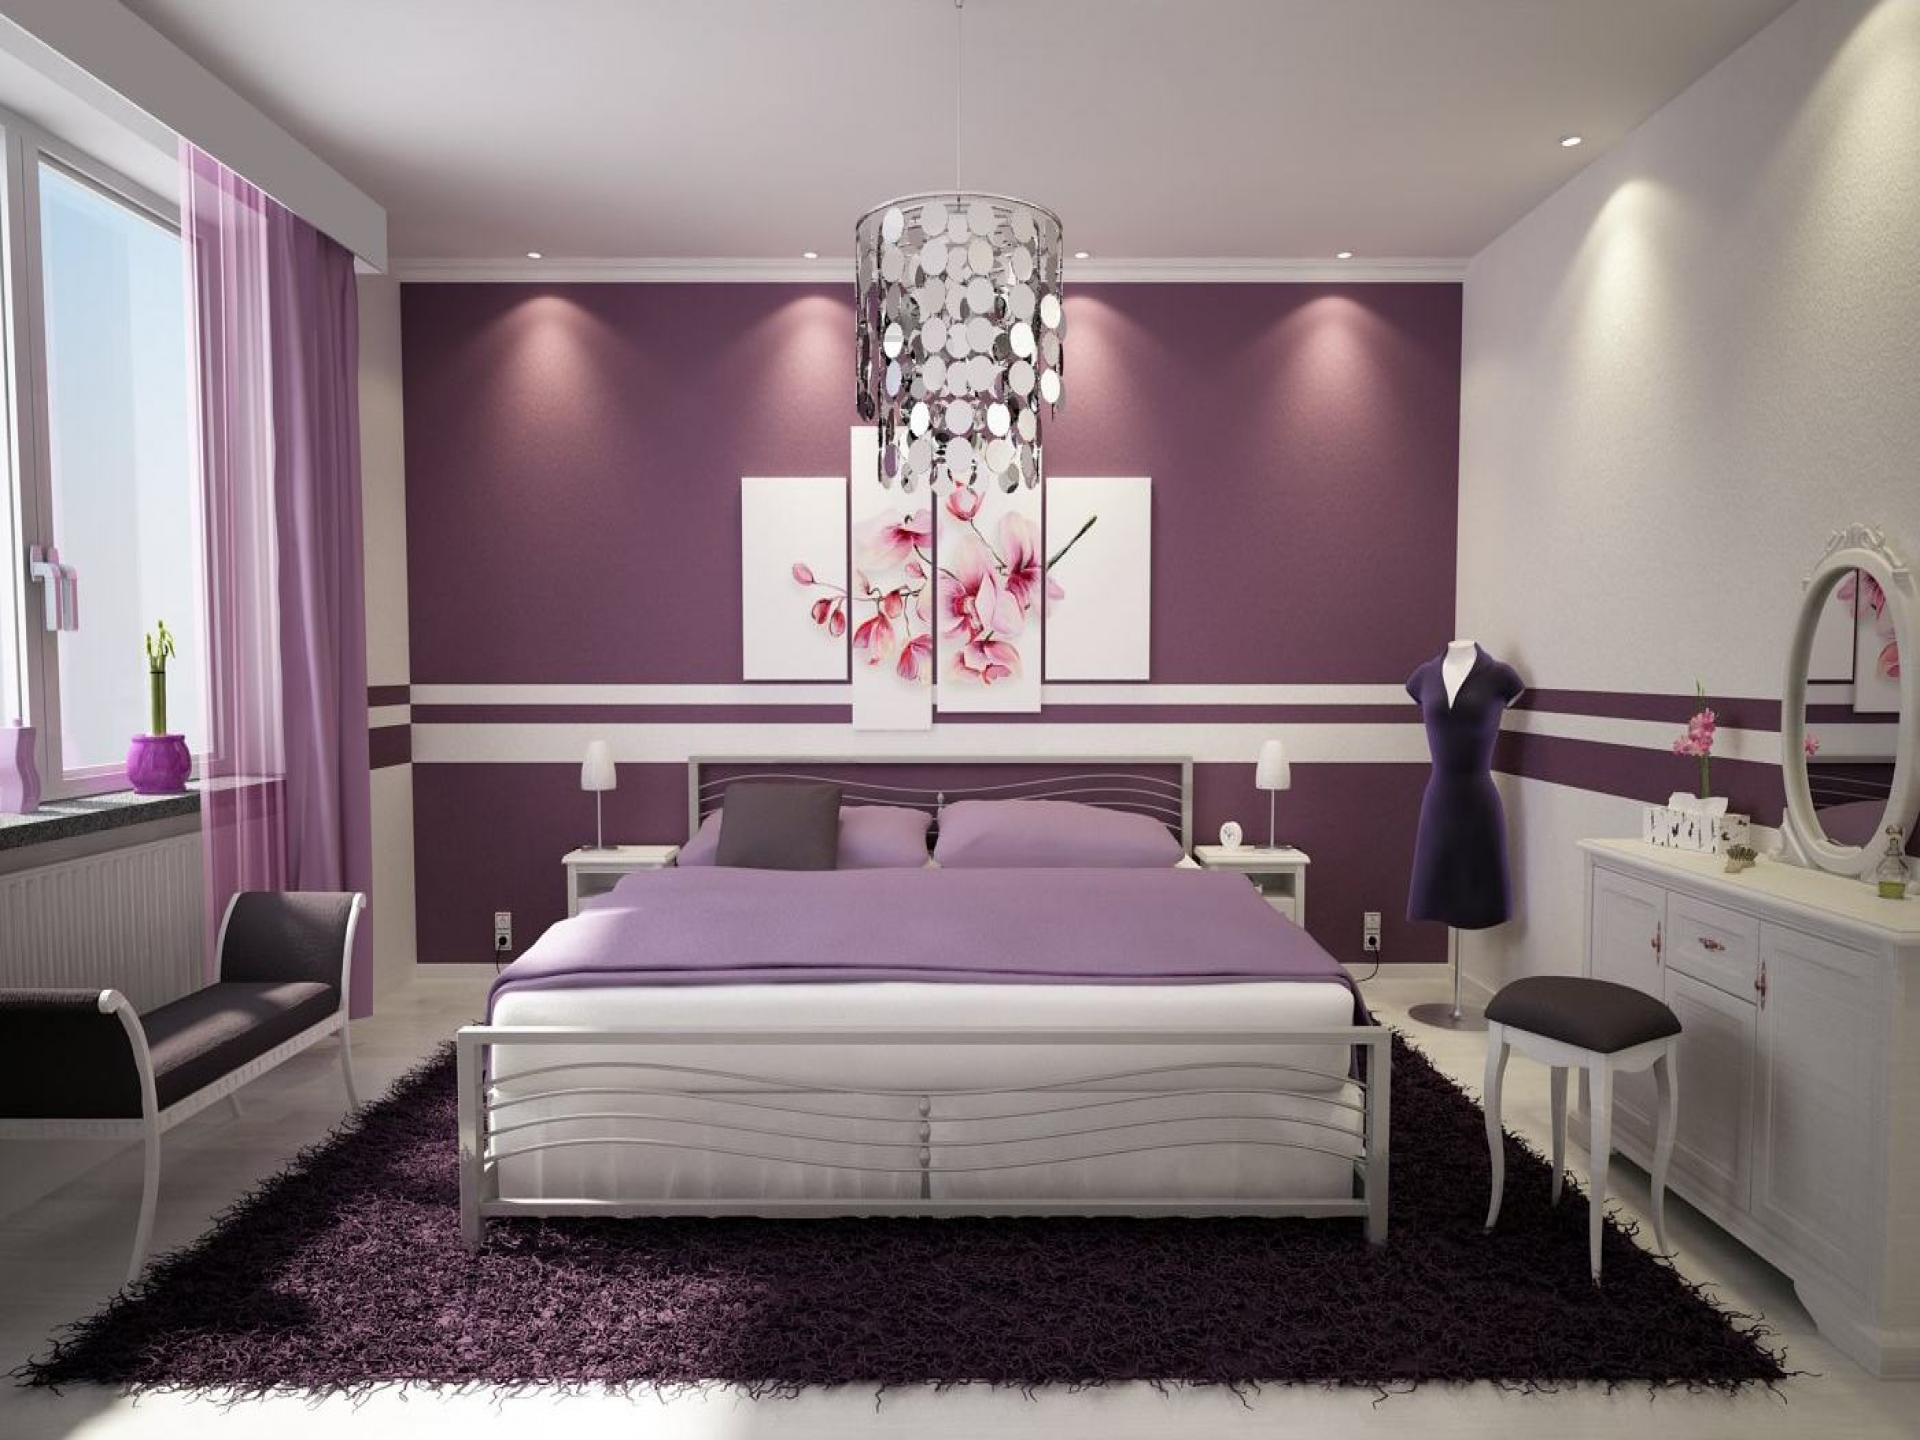 Bedroom design purple and grey - Bedroom Design Purple And Grey 16